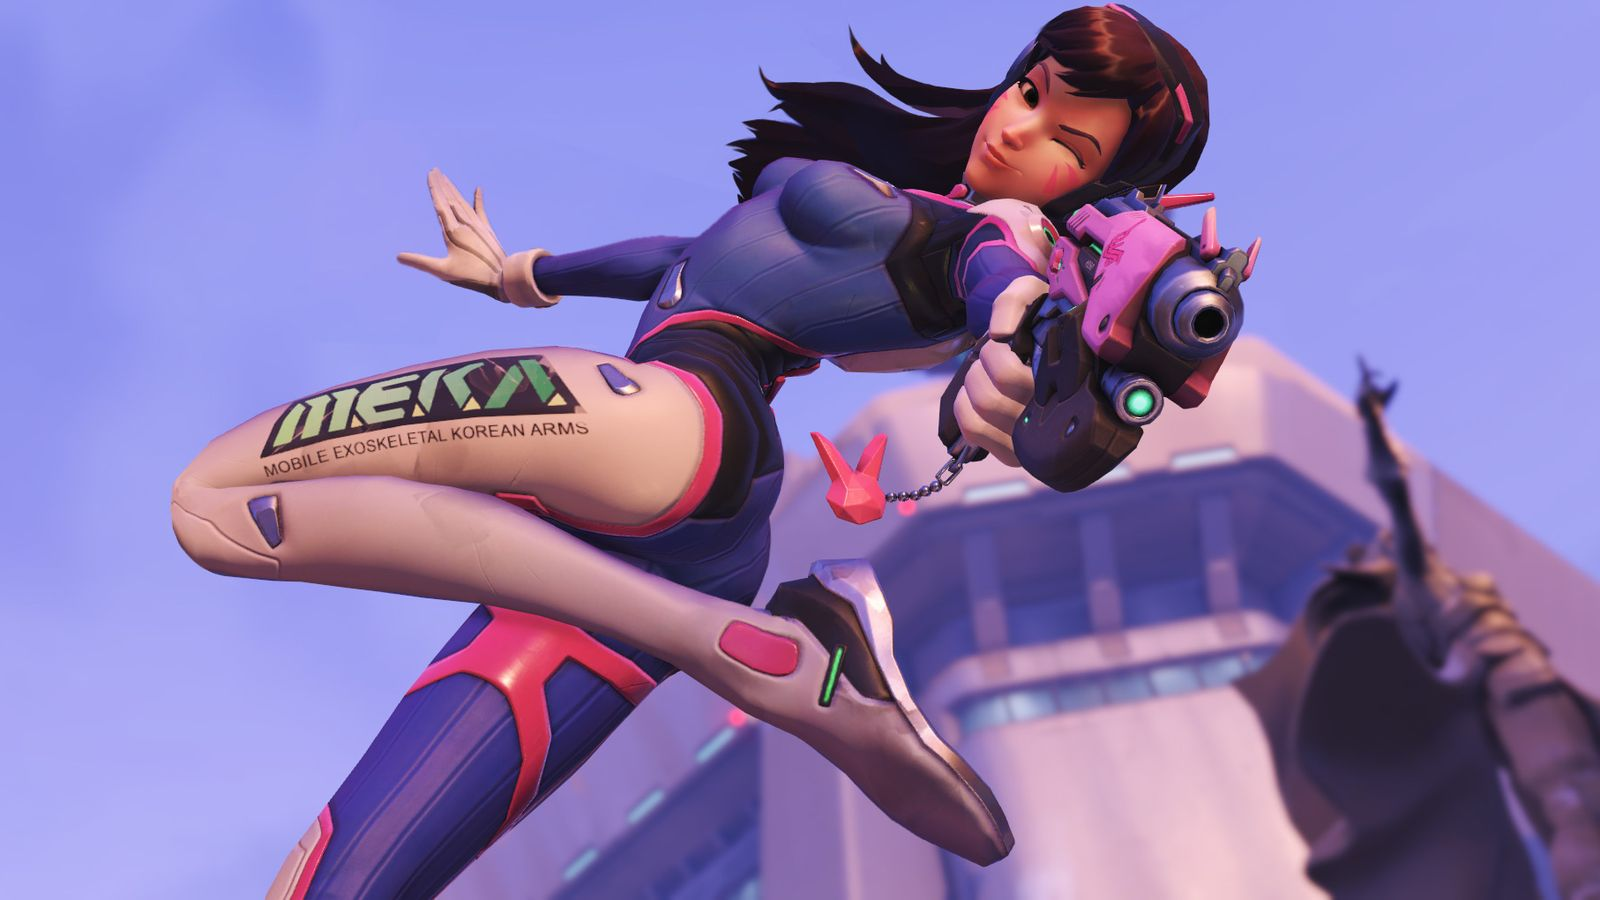 Blizzard Promotes Overwatch / Heroes of the Storm Cross-Play with Nexus Challenge 2.0